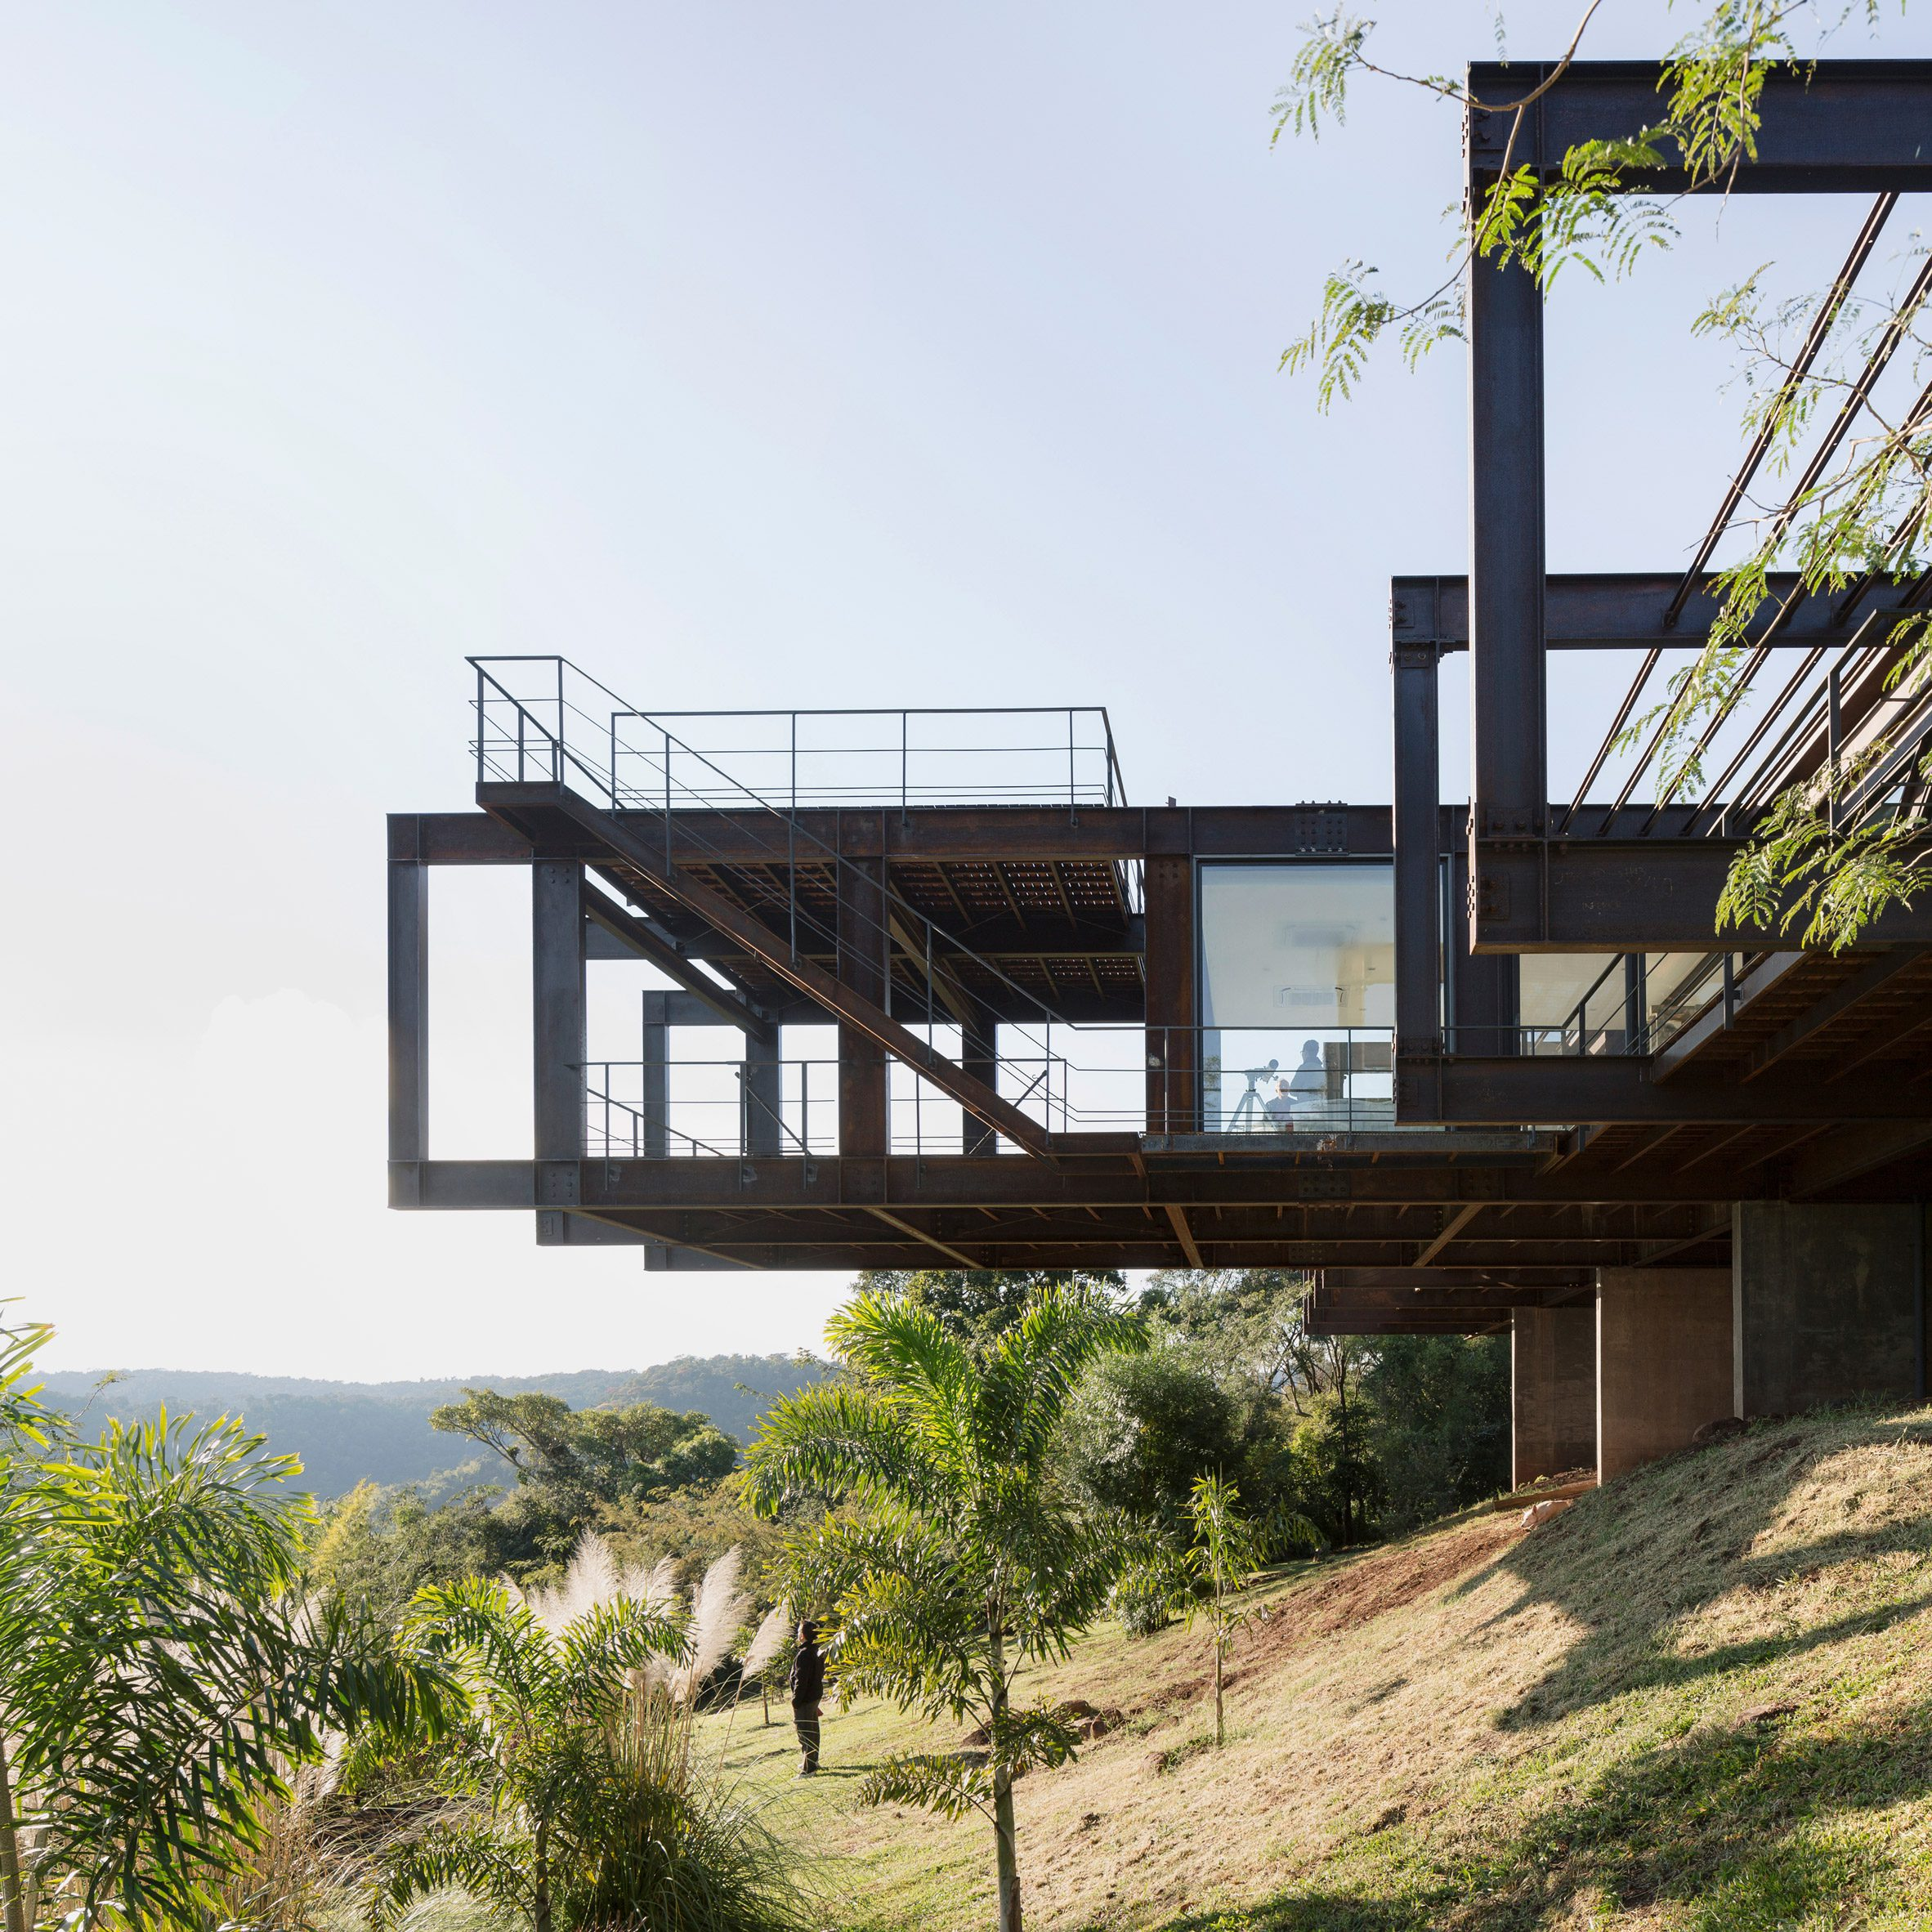 Steel house by Bauen was assembled in seven days on remote mountain site in Paraguay